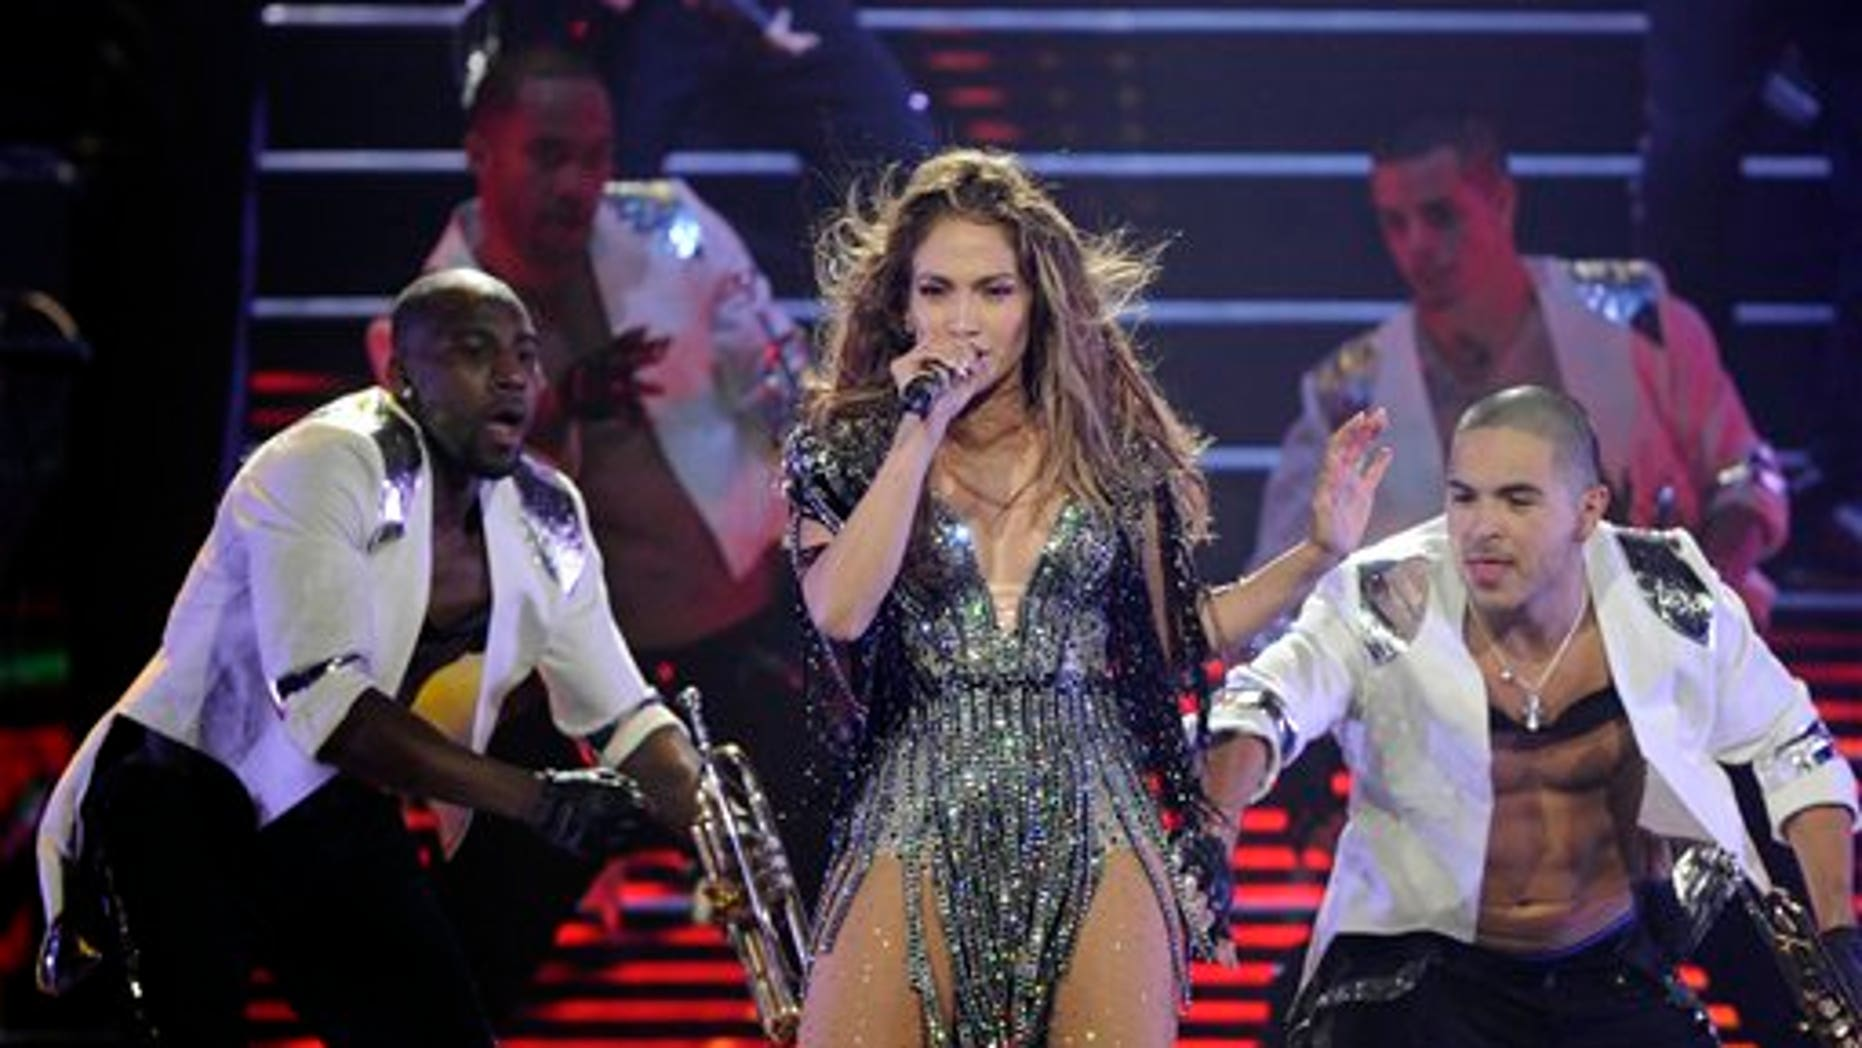 Oct. 22, 2011: Jennifer Lopez performs at Mohegan Sun during its 15th anniversary celebration in Uncasville, Conn.